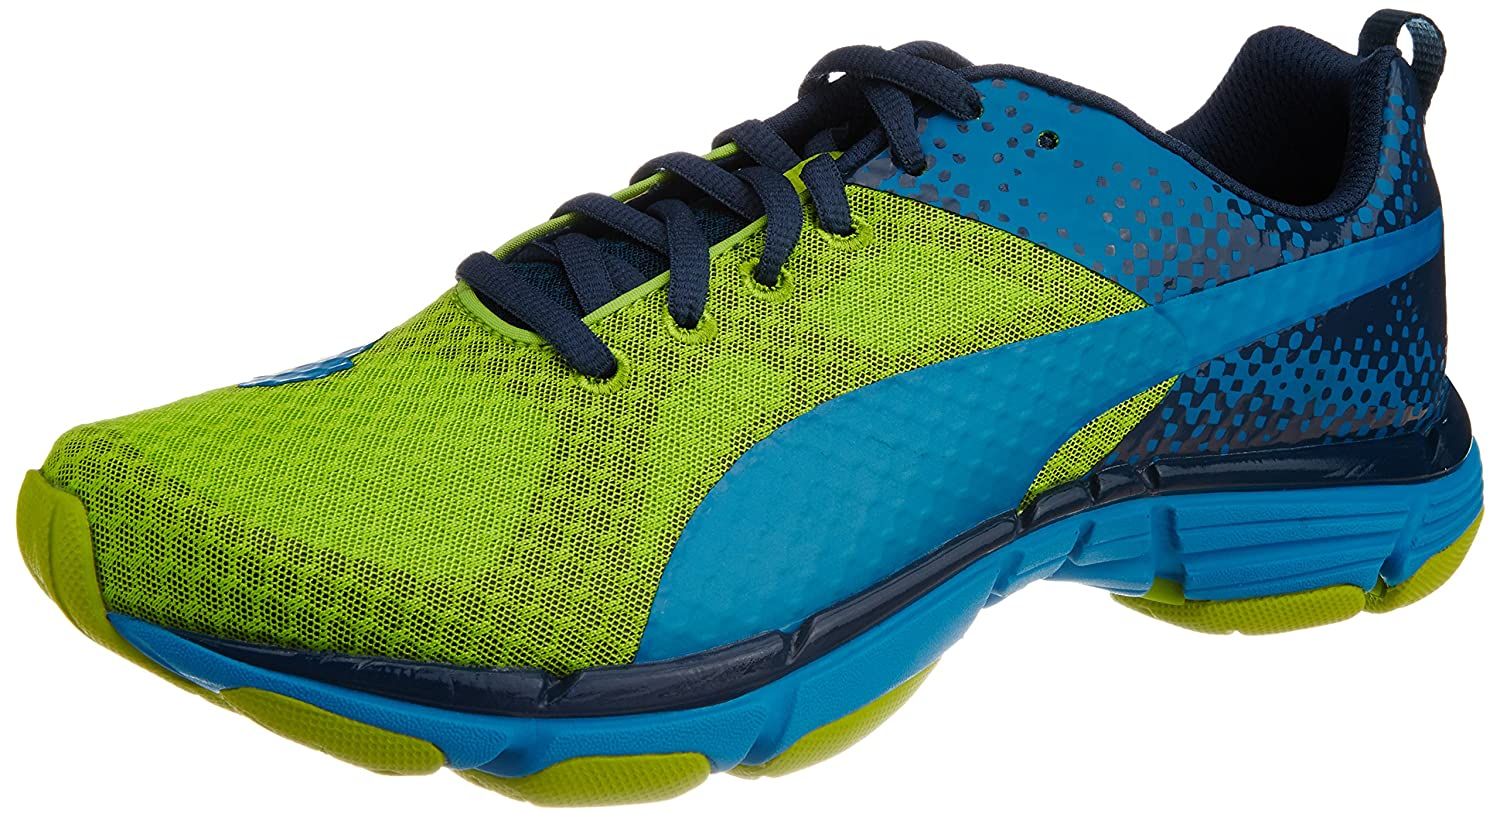 Puma Mobium V2 Ride Running Shoes - 6.5 Blue  Amazon.co.uk  Shoes   Bags cb72d520f